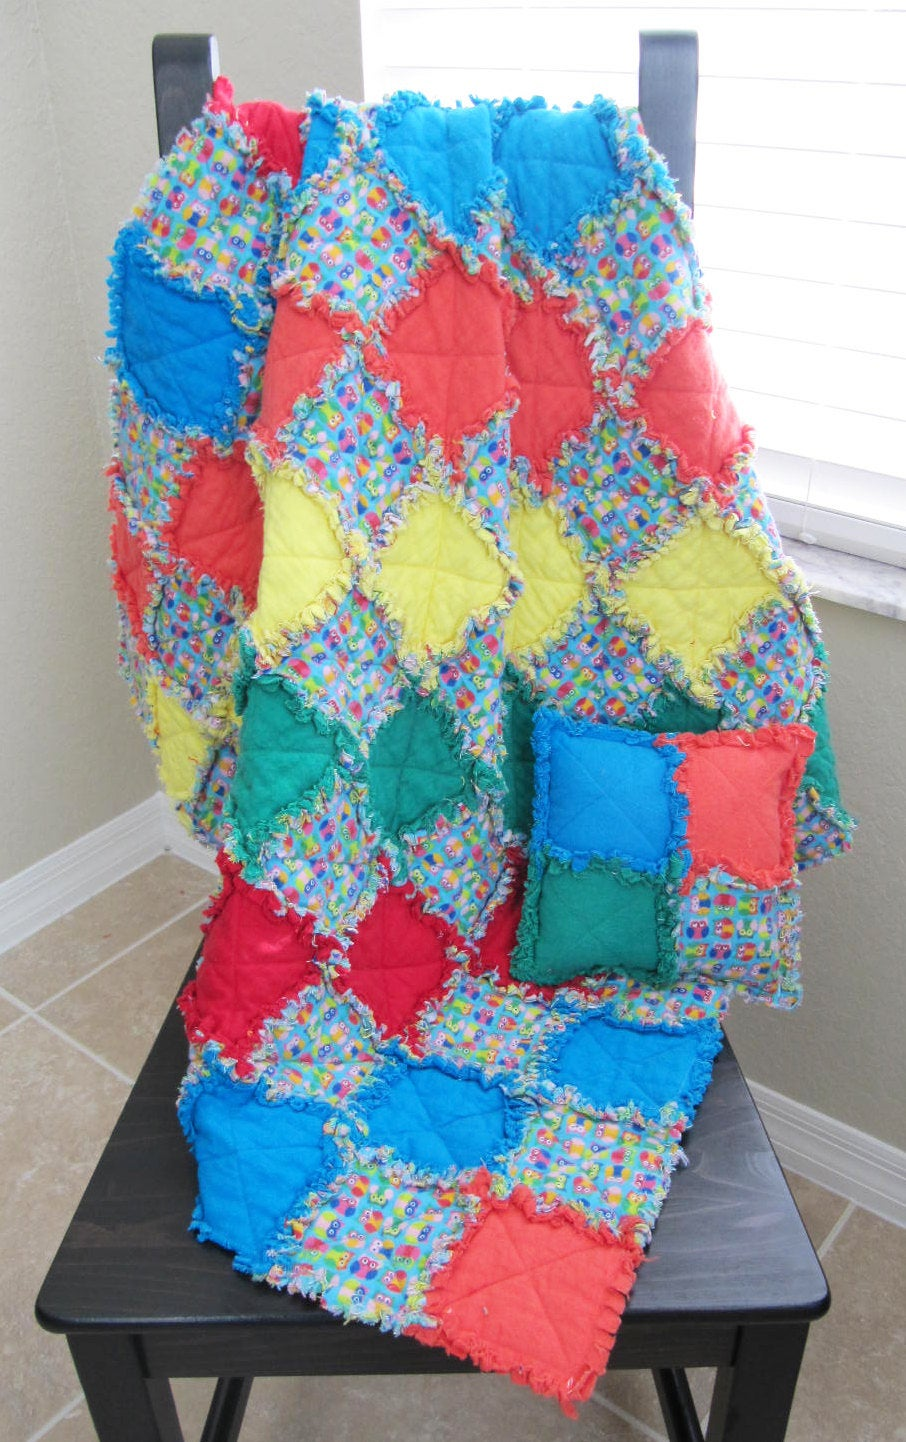 Owls Crib Quilt In Unisex Colors with free matching pillow - crib/nursery quilt, owl baby bedding, colorful,